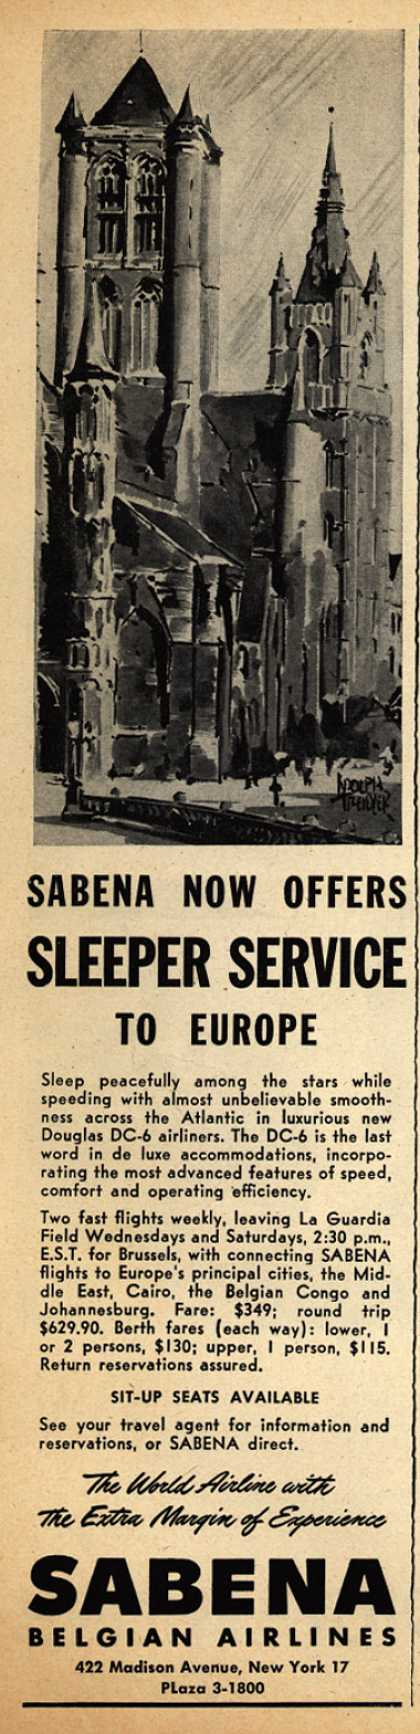 Sabena Belgian Airline's Sleeper Service to Europe – Sabena Now Offers Sleeper Service to Europe (1947)